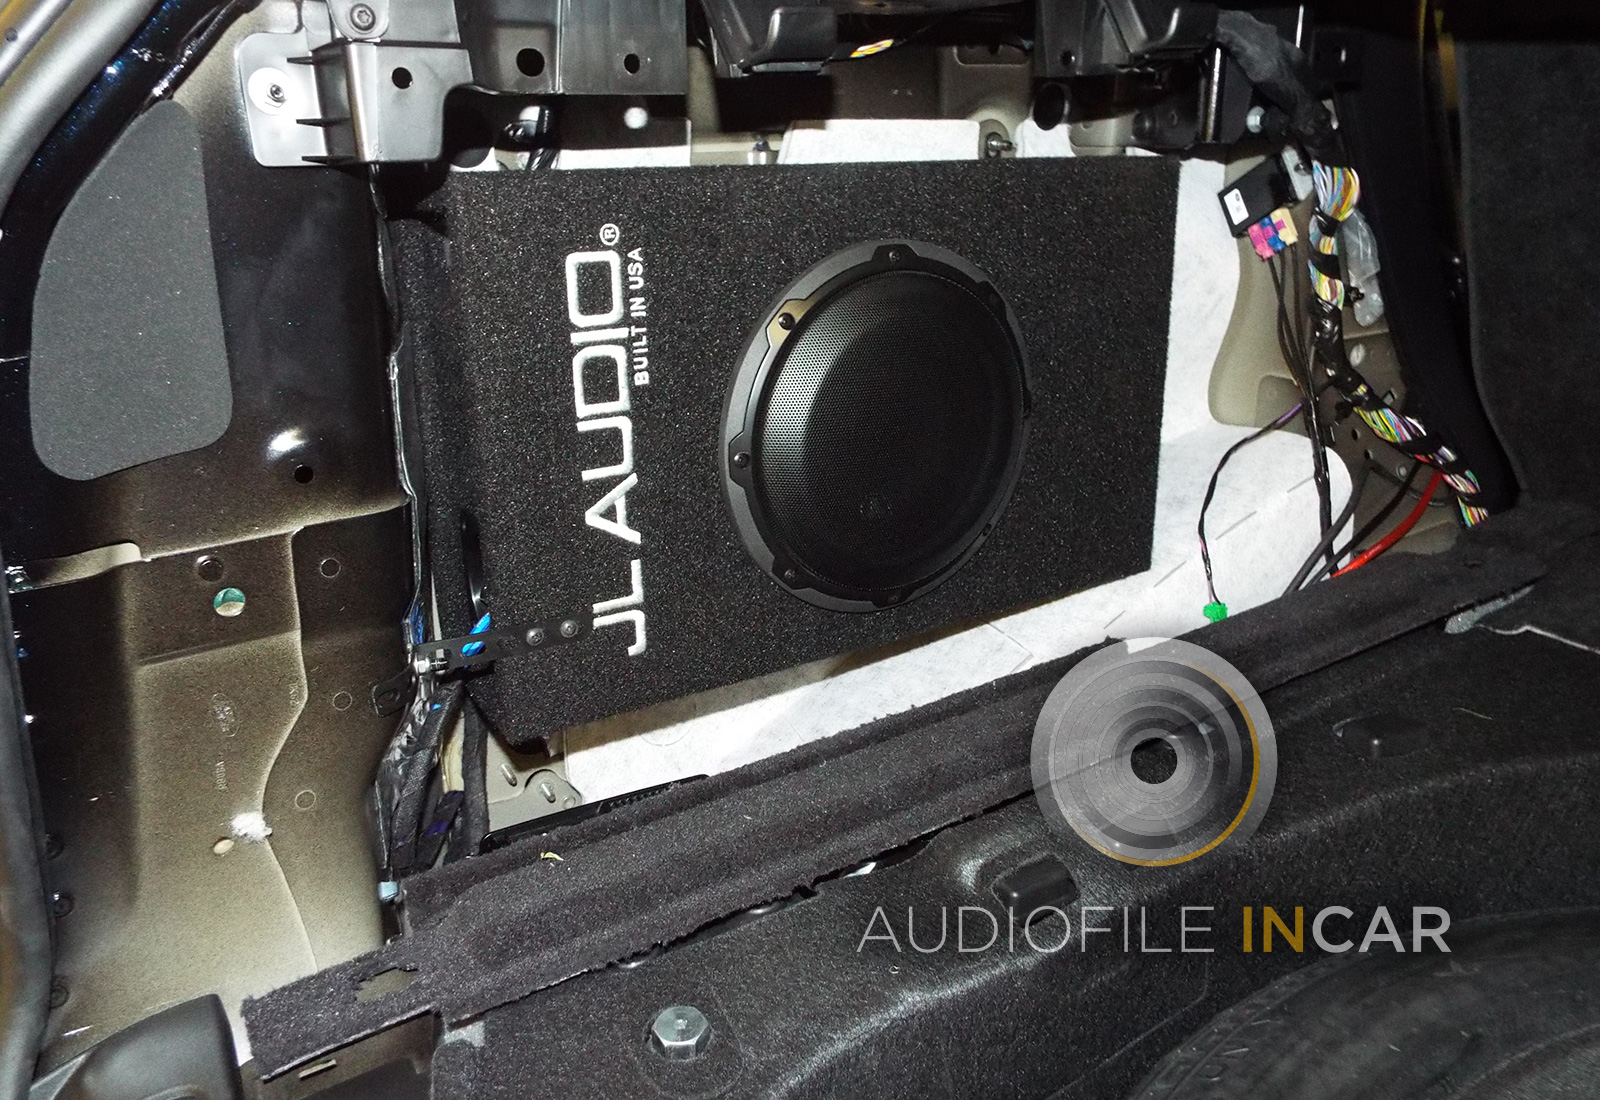 This image shows the JL Audio Compact Subwoofer mounted in the boot before the trim panels are refitted. Soundproofing is applied behind the subwoofer to kill any resonance or vibration. This subwoofer works incredibly well.